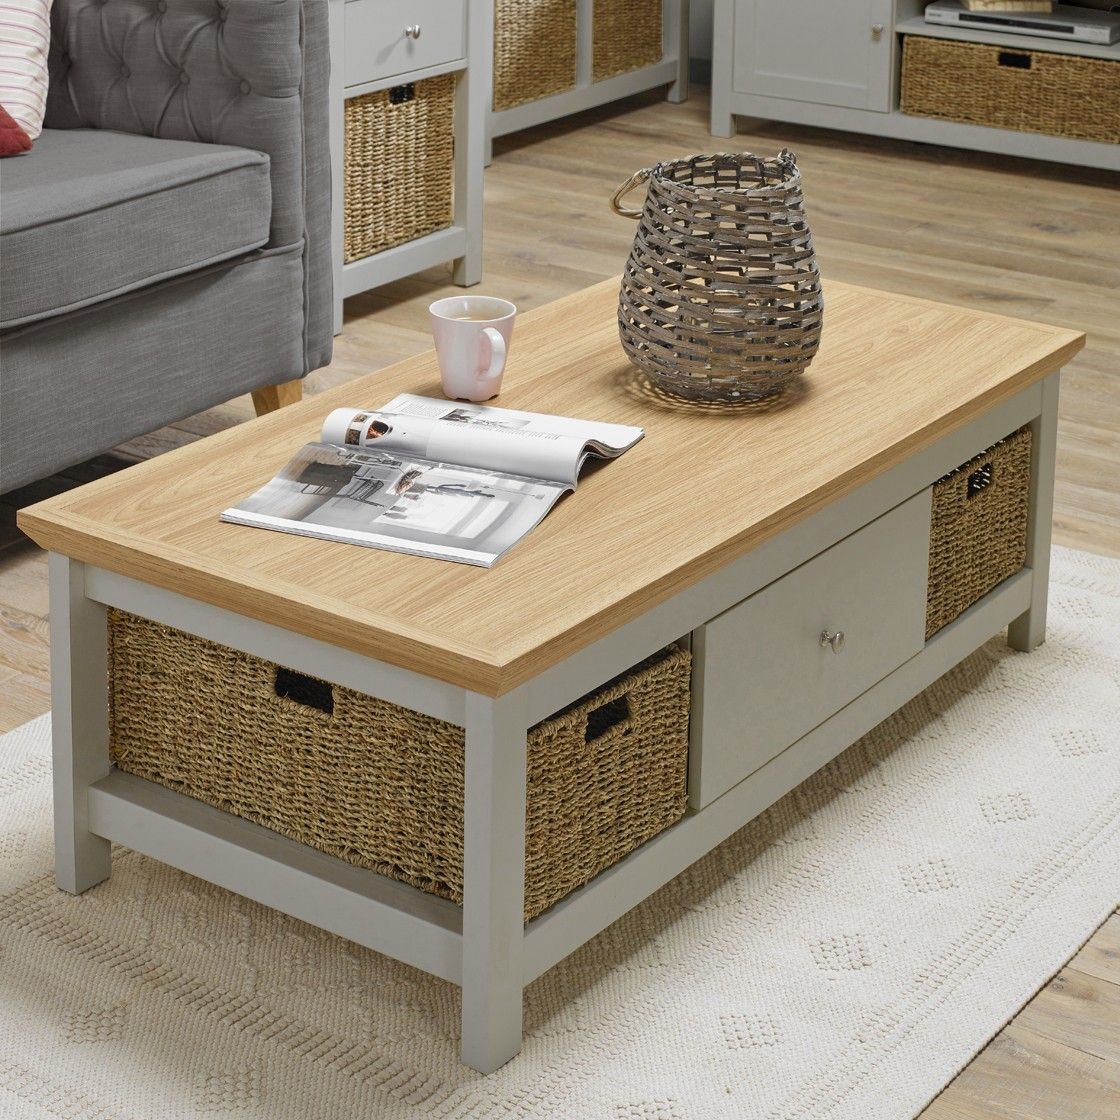 Cotswold Coffee Table Grey Home Store Living Coffee Table Coffee Table Grey Wooden Coffee Table [ 1120 x 1120 Pixel ]